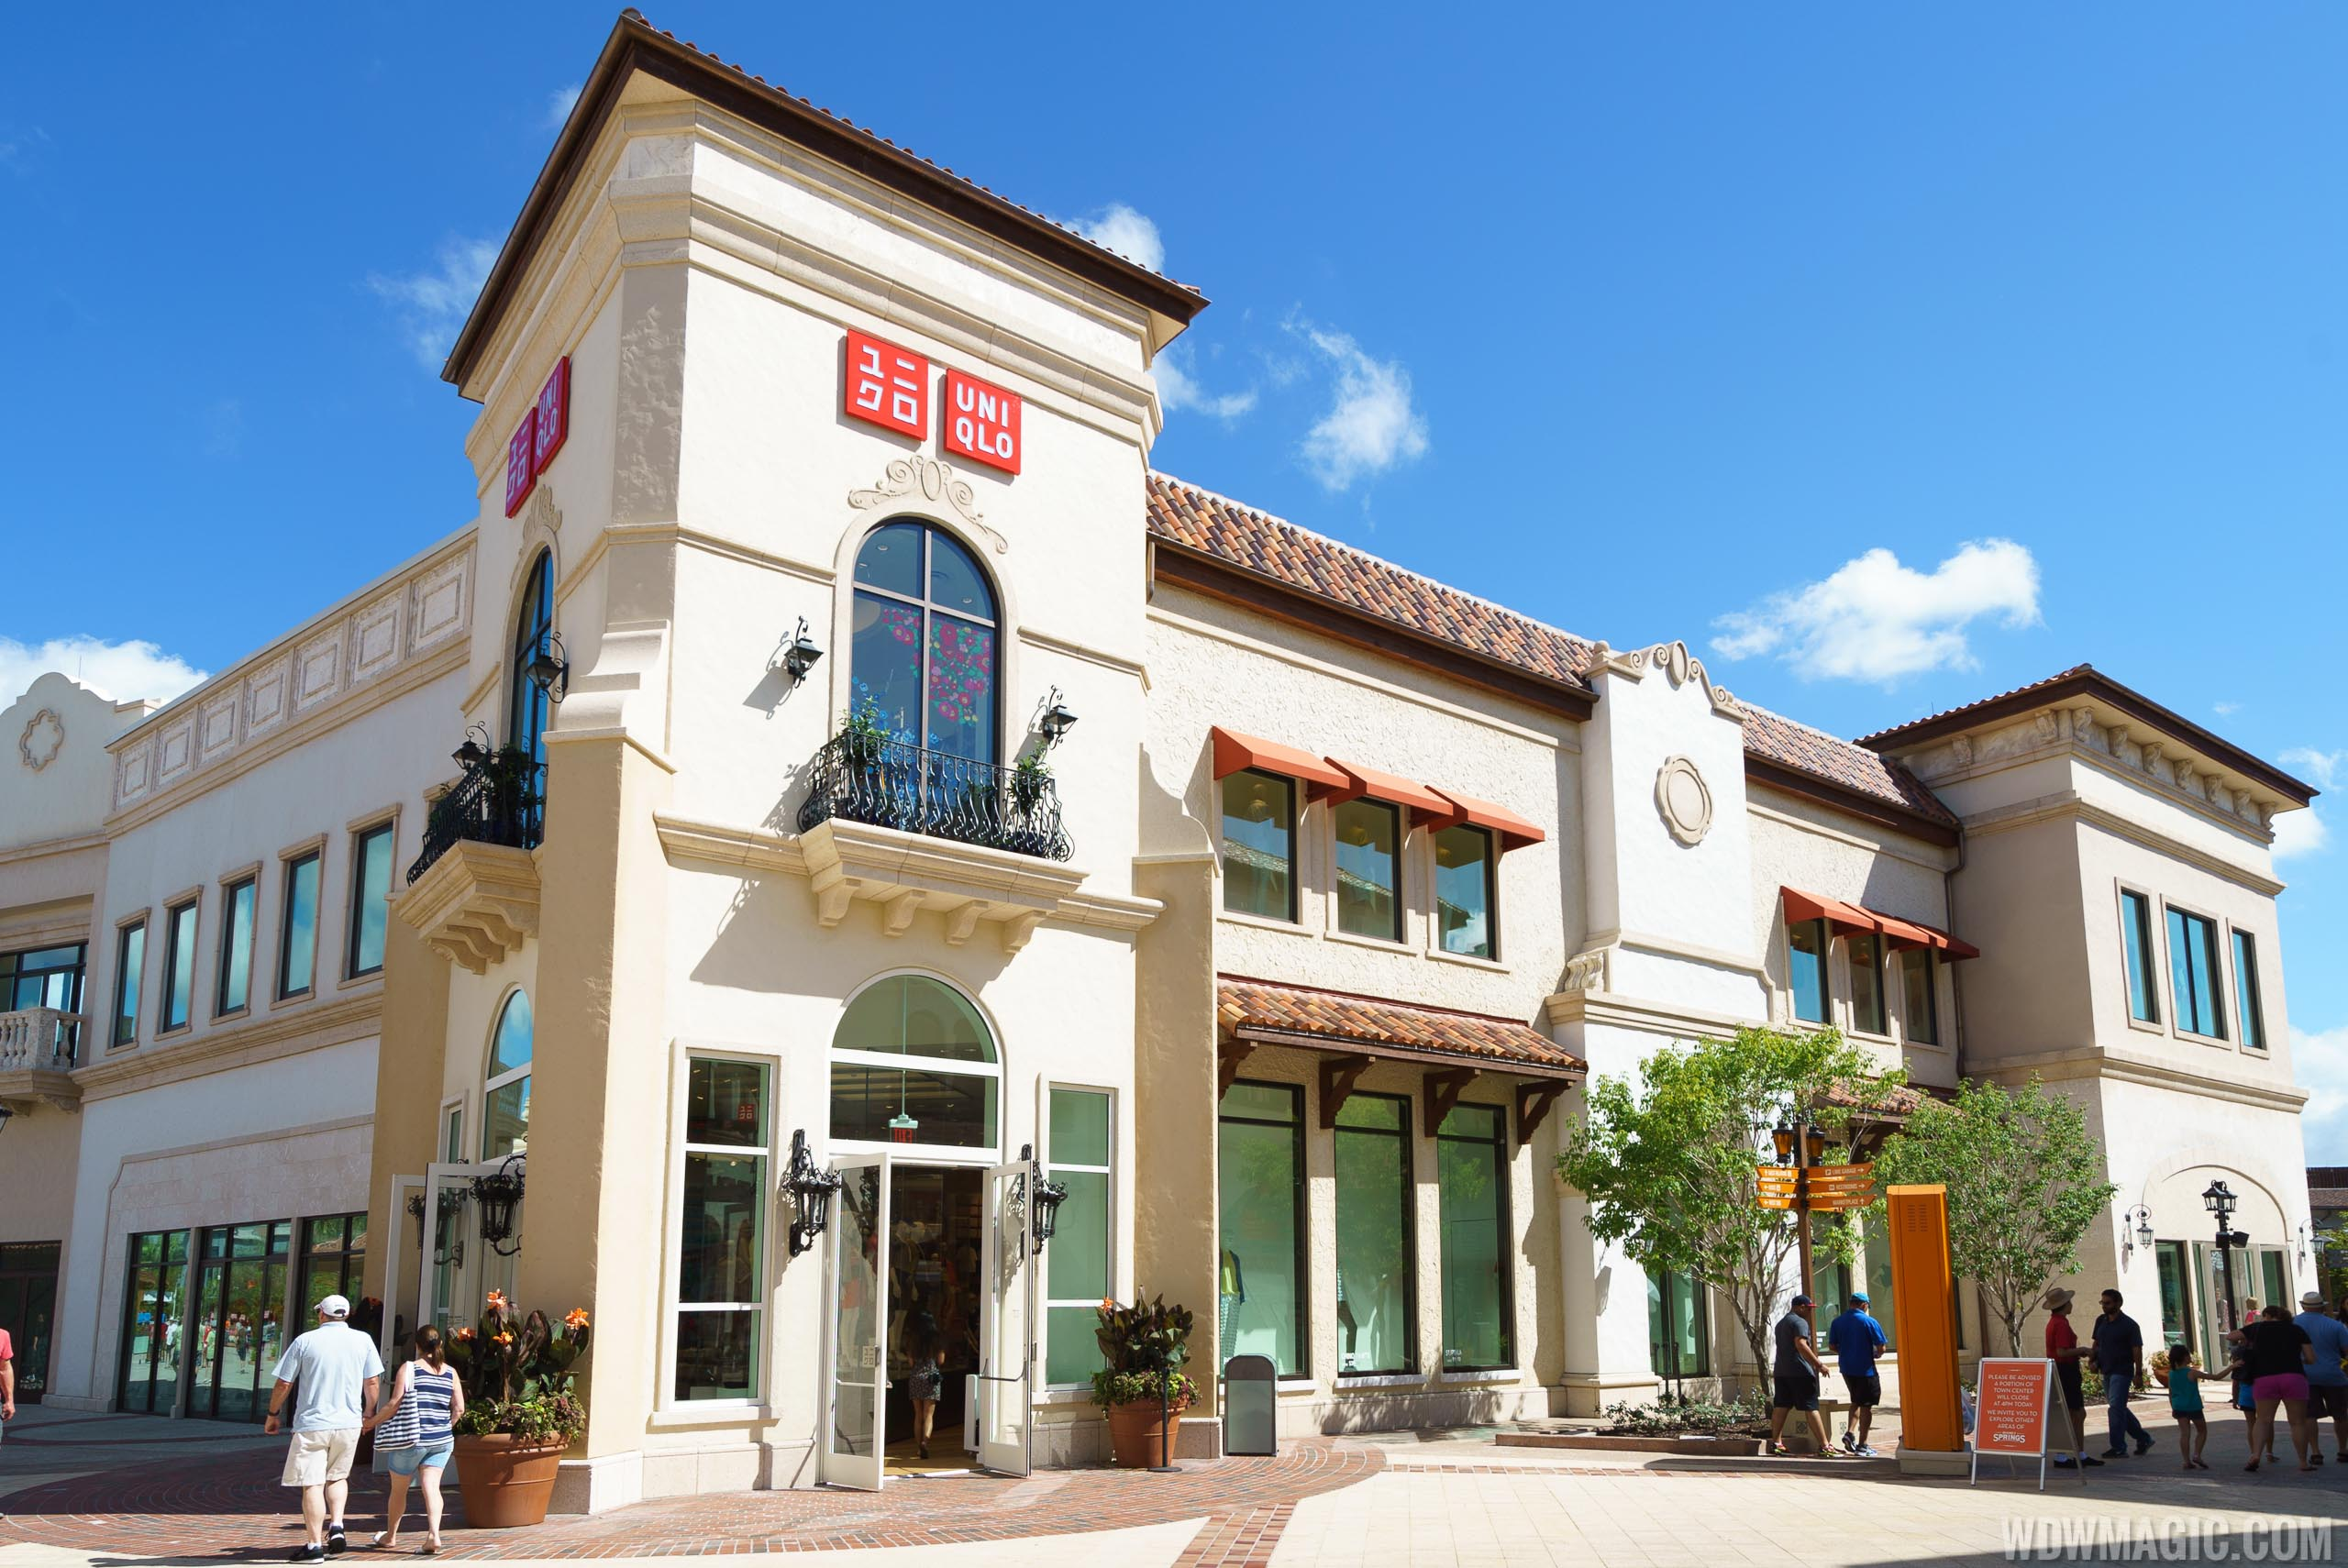 UNIQLO at Disney Springs overview